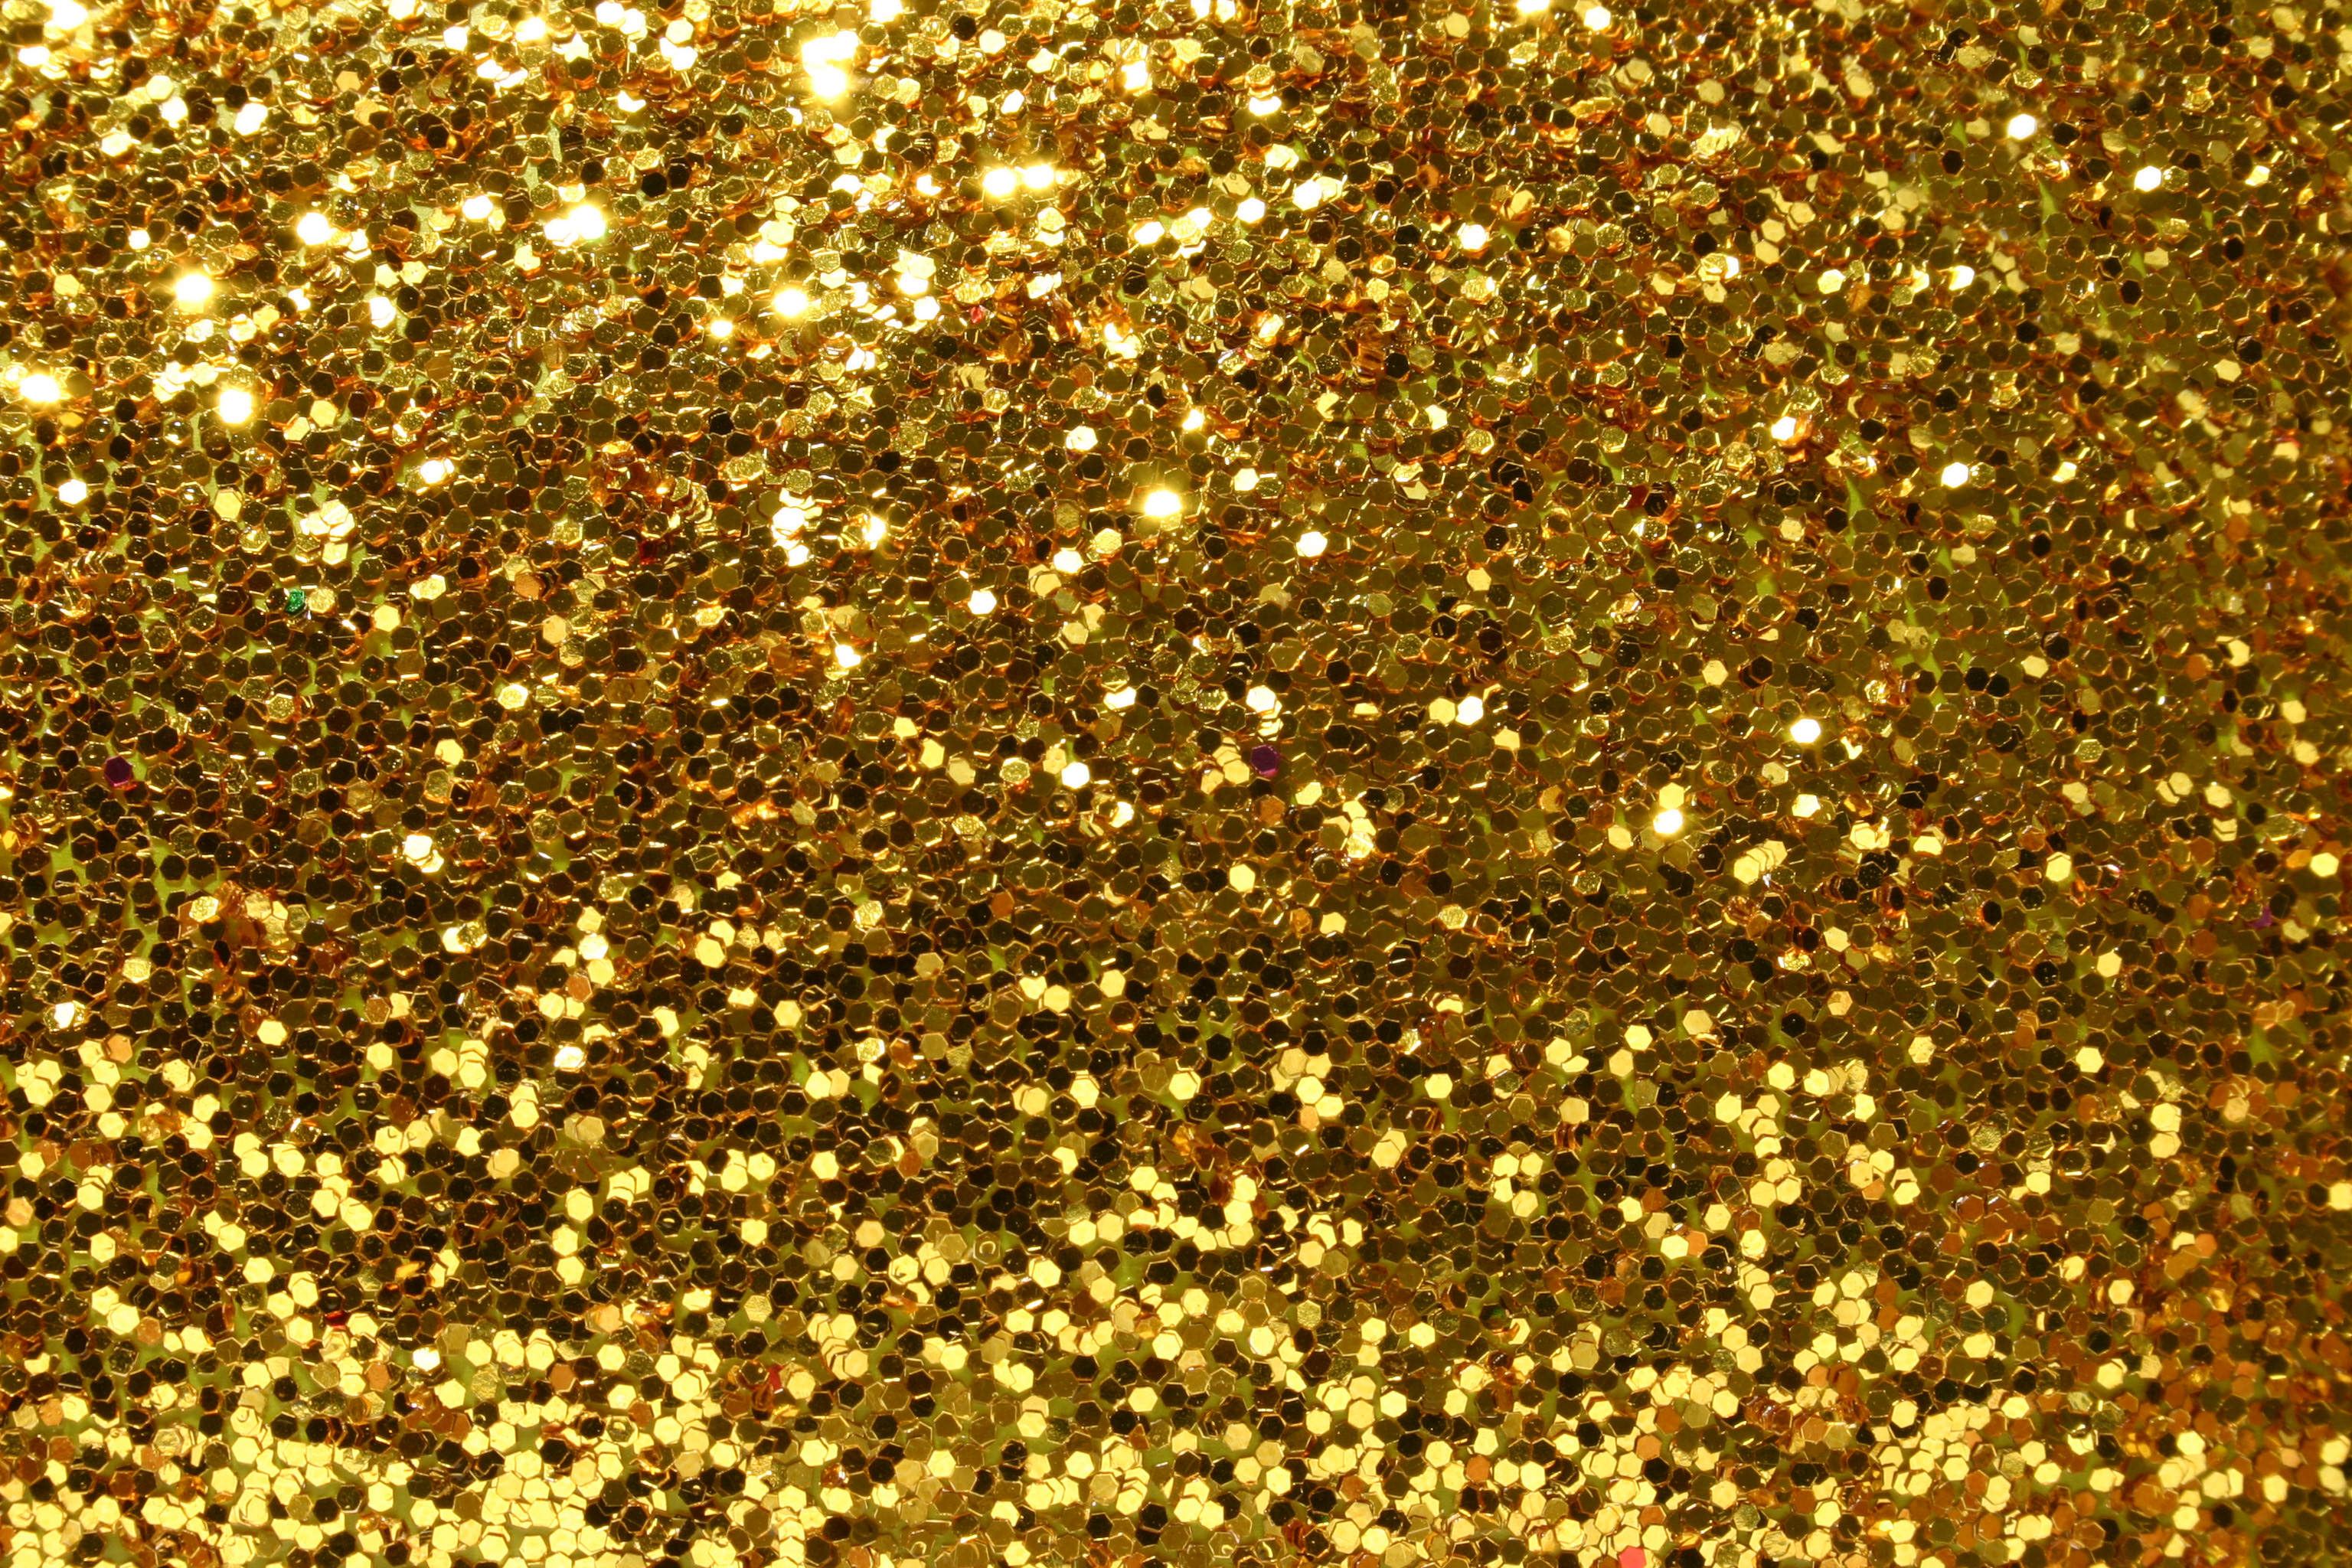 20 Gold Glitter Backgrounds HQ Backgrounds FreeCreatives 3072x2048